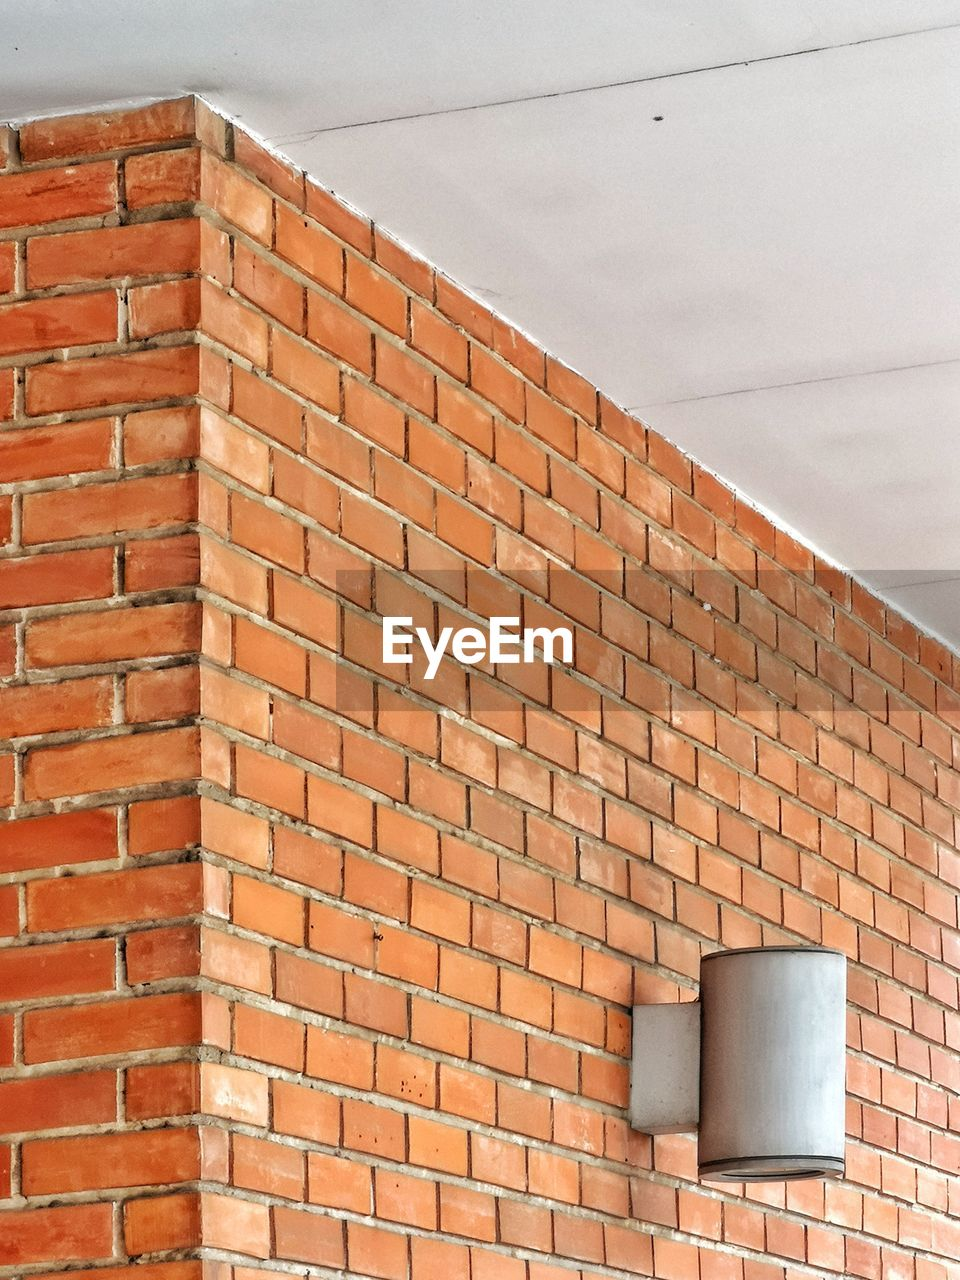 brick, wall - building feature, brick wall, built structure, wall, architecture, building exterior, no people, day, brown, pattern, low angle view, outdoors, roof, building, lighting equipment, shape, container, nature, window